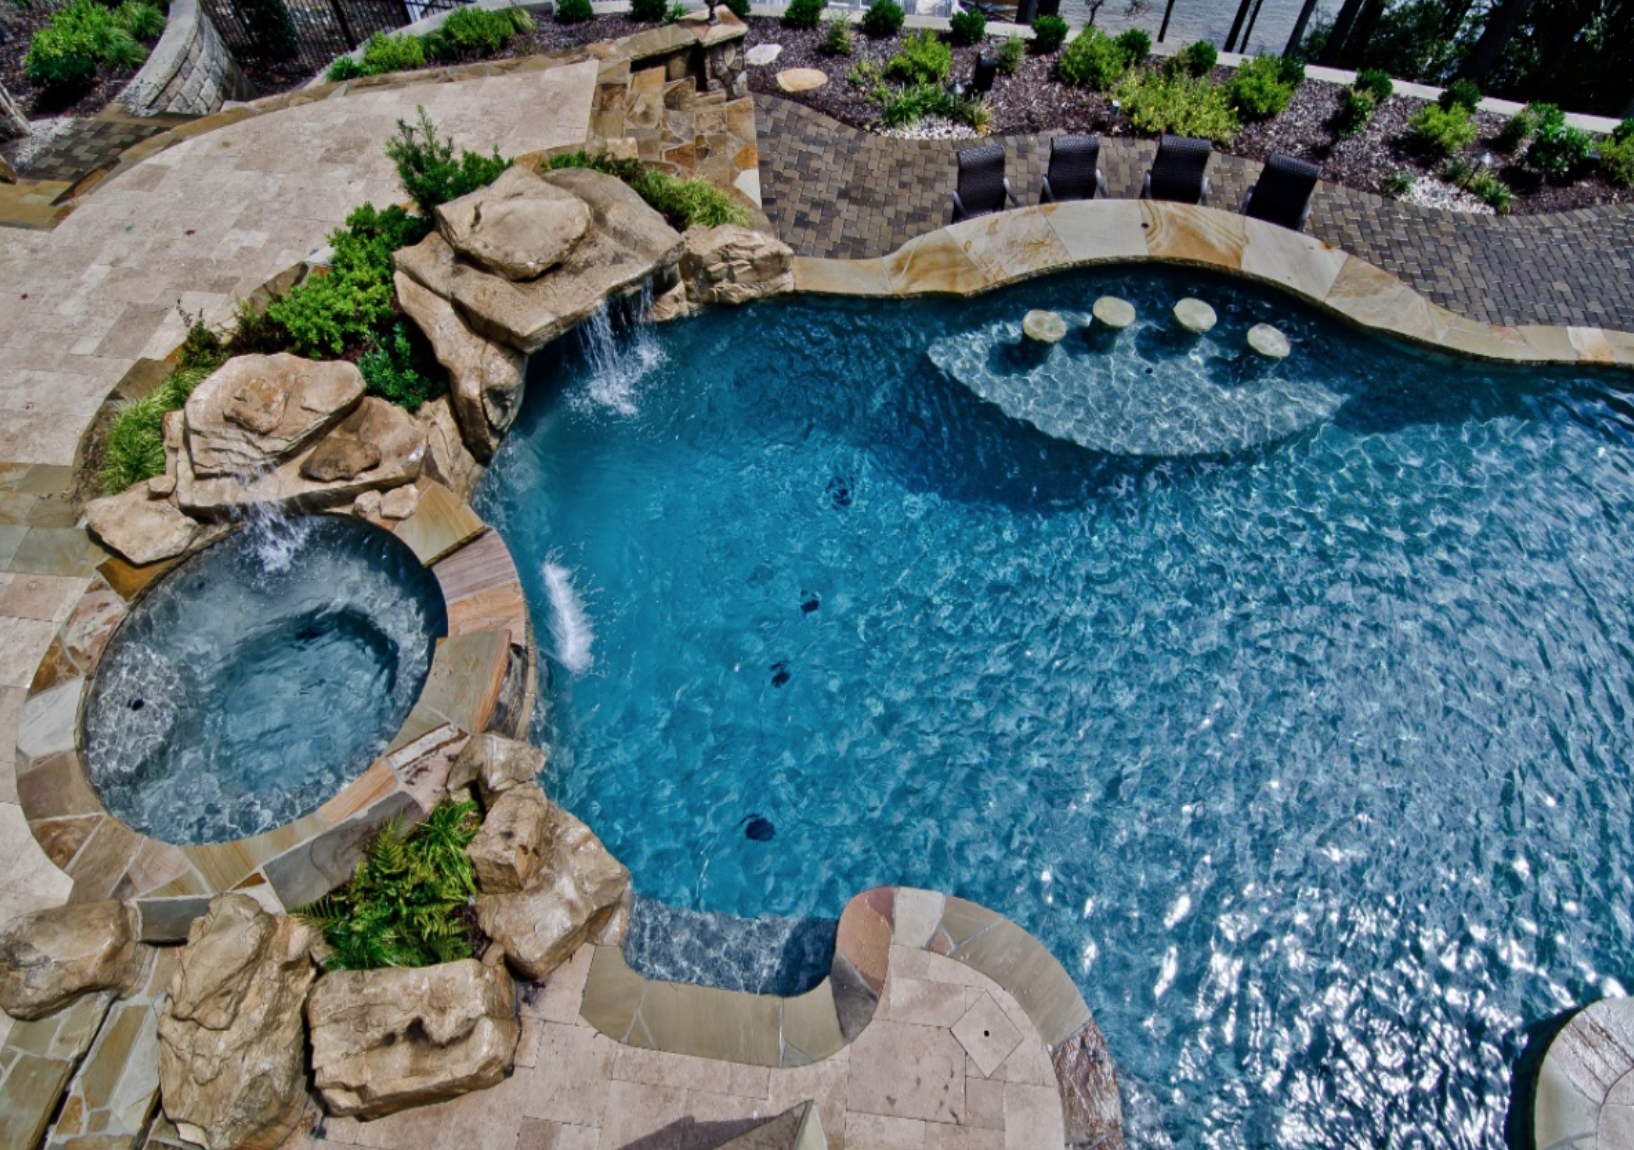 Get That Resort Style Living With A Pool And Raised Spa, Waterfall, Swimup  Bar